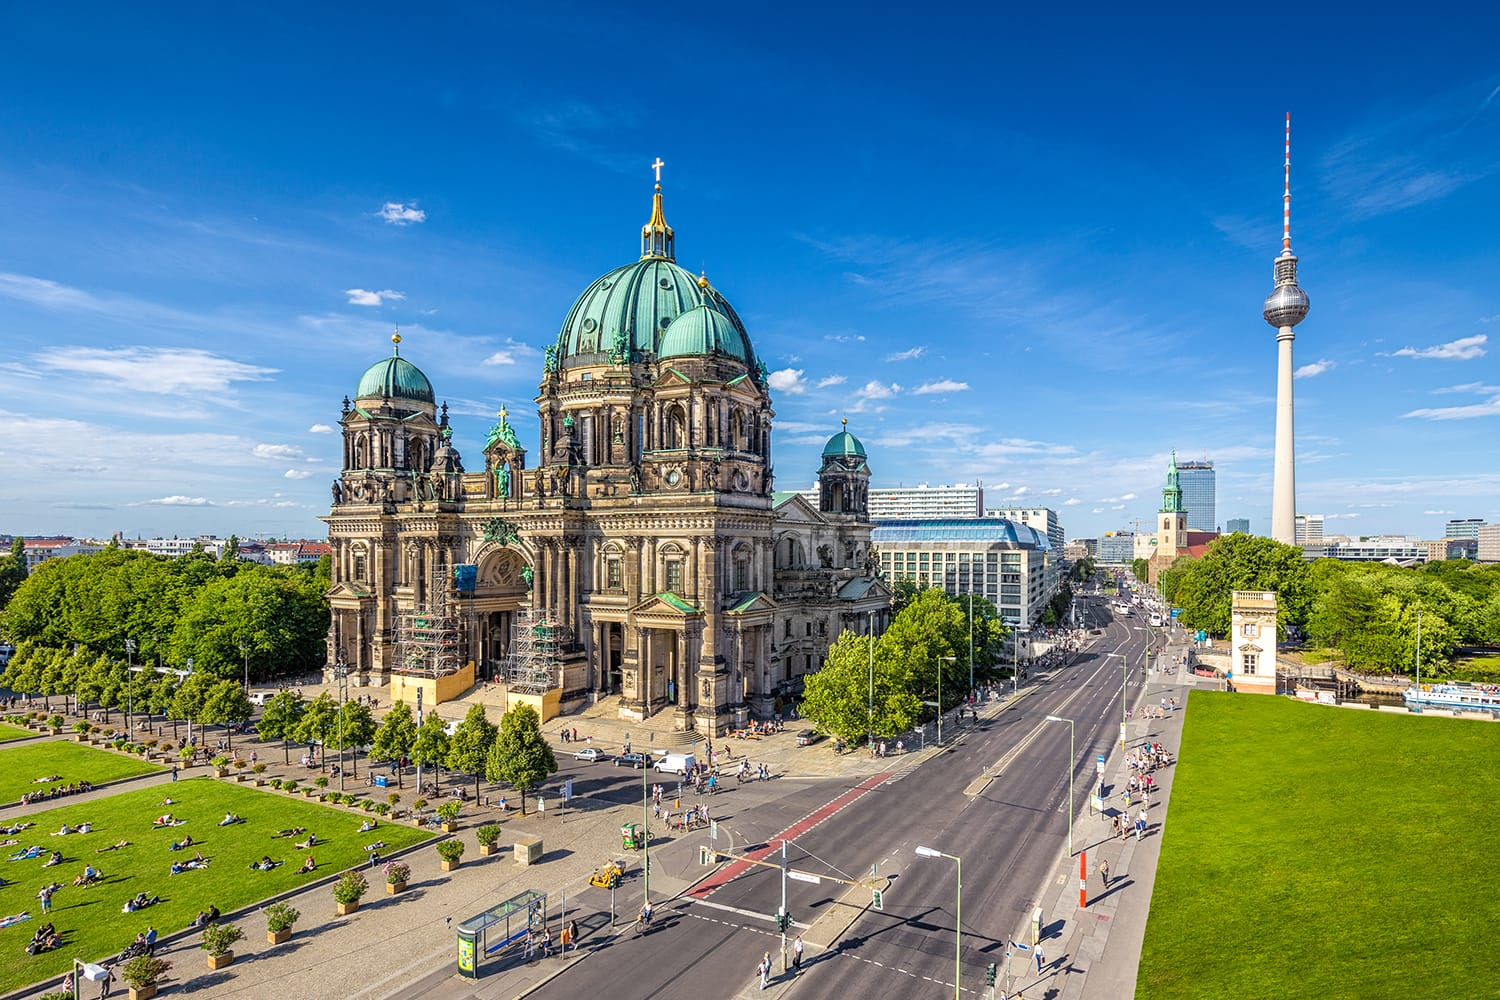 Aerial view of Berlin Cathedral at Lustgarten park with famous TV tower in the background on a sunny day with blue sky and clouds in summer, Berlin Mitte district, Germany